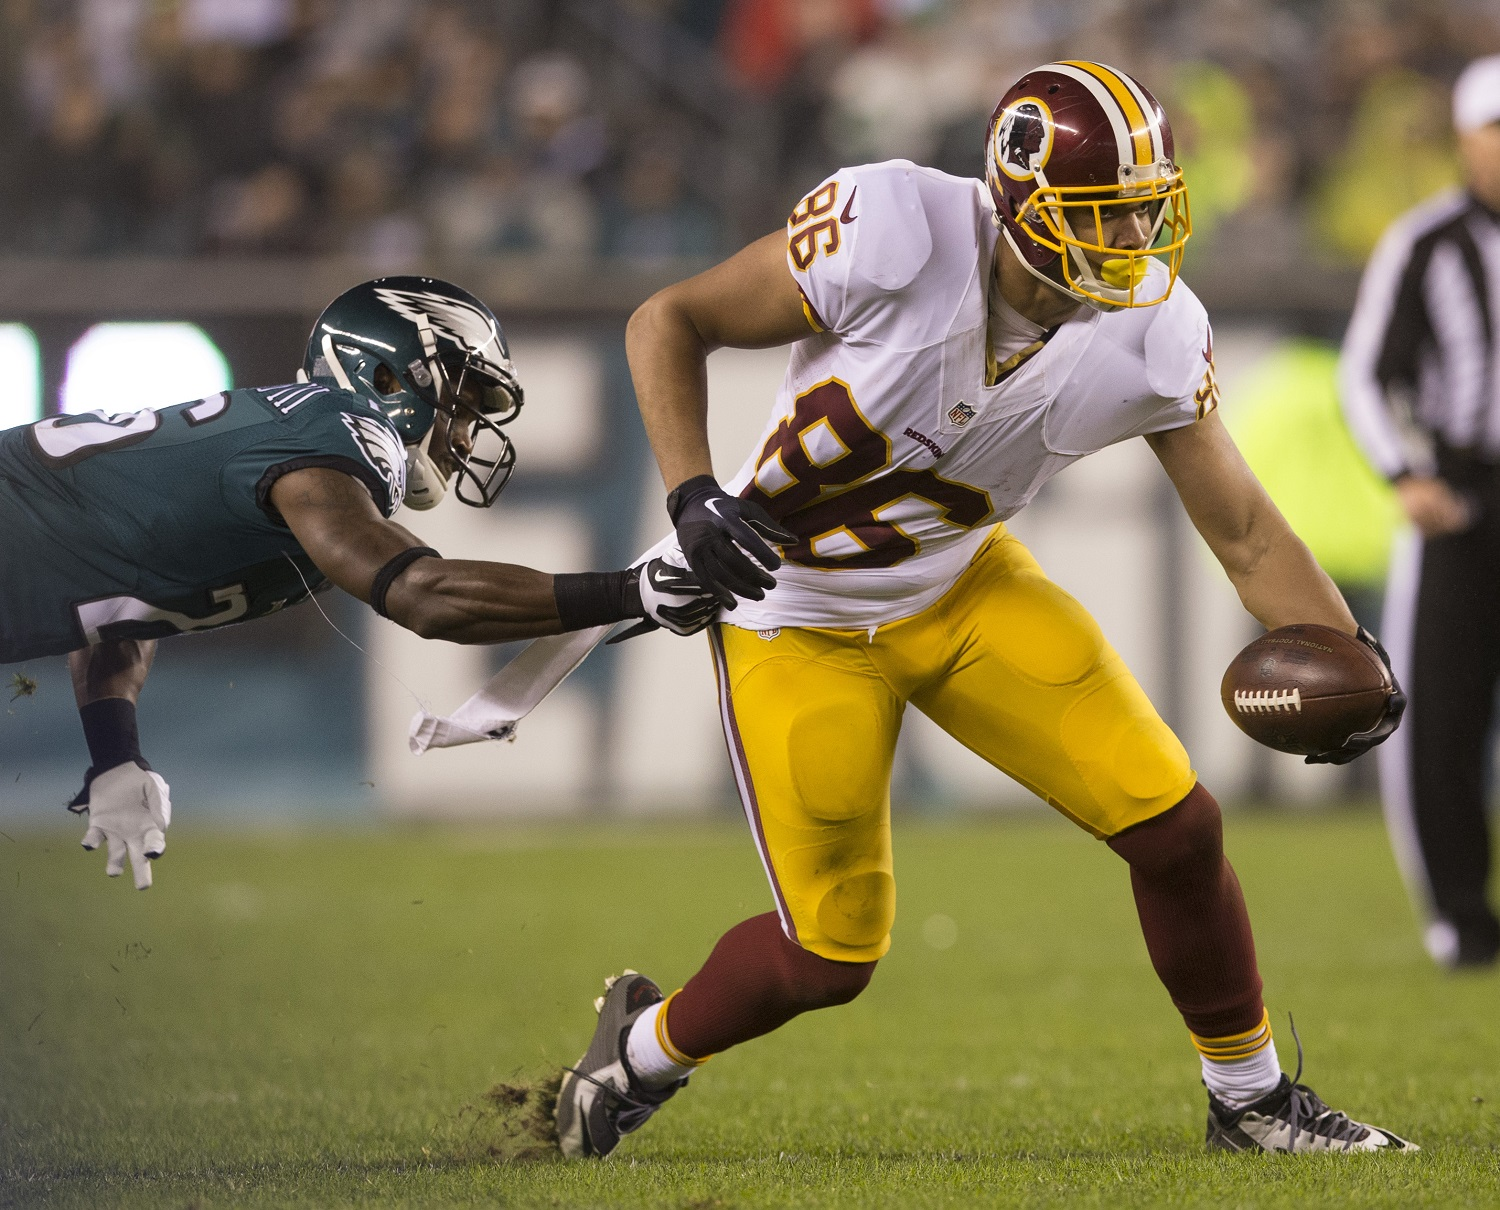 PHILADELPHIA, PA - DECEMBER 26: Jordan Reed #86 of the Washington Redskins runs past Walter Thurmond #26 of the Philadelphia Eagles on December 26, 2015 at Lincoln Financial Field in Philadelphia, Pennsylvania.  The Redskins defeated the Eagles 38-24. (Photo by Mitchell Leff/Getty Images) *** Local Caption *** Jordan Reed;Walter Thurmond